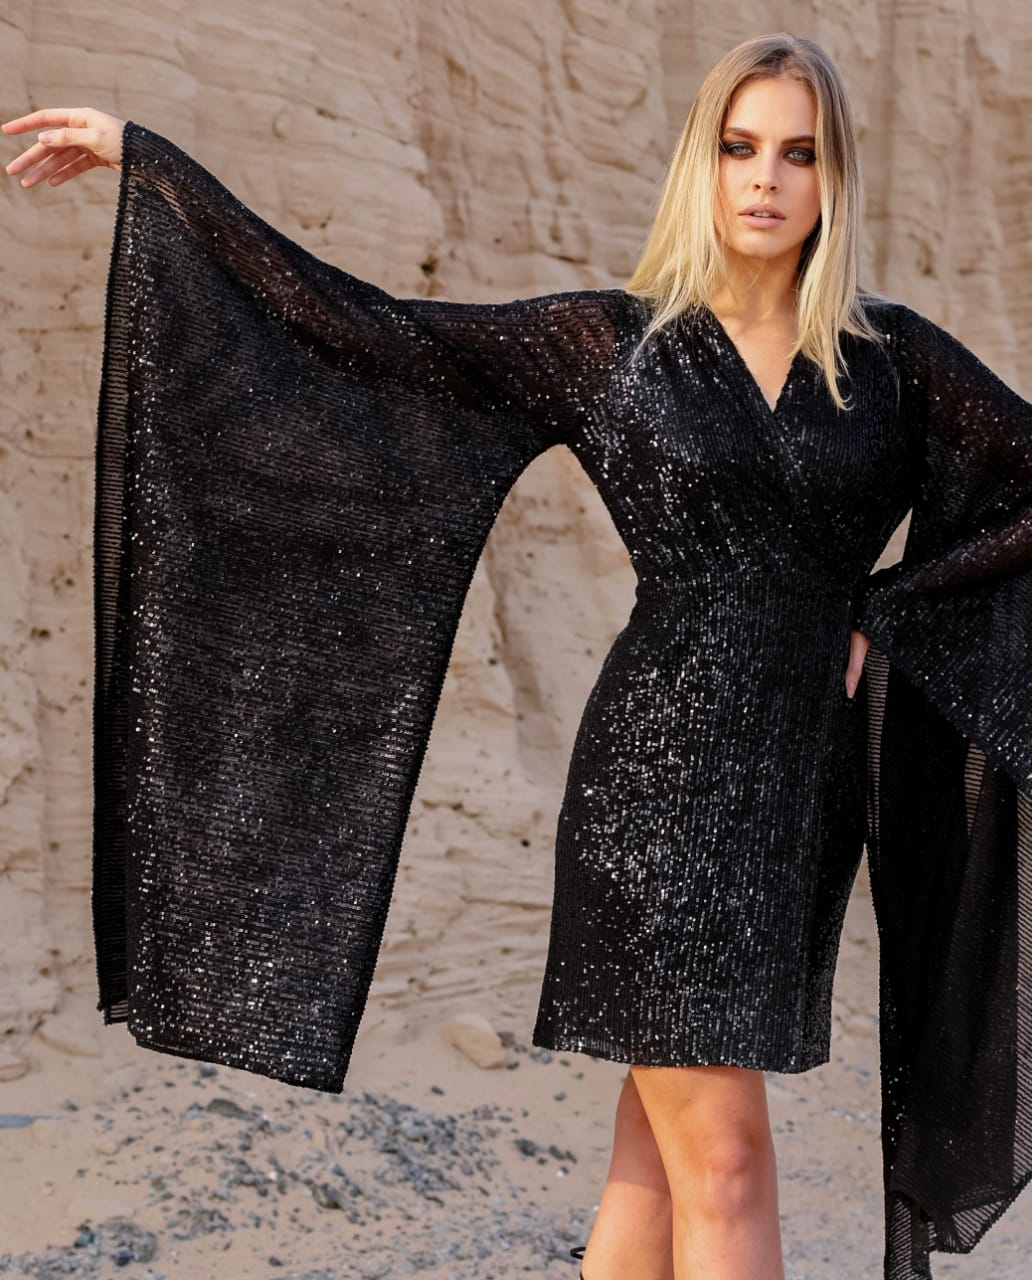 Haifa G Sequin Top/ Dress - Black